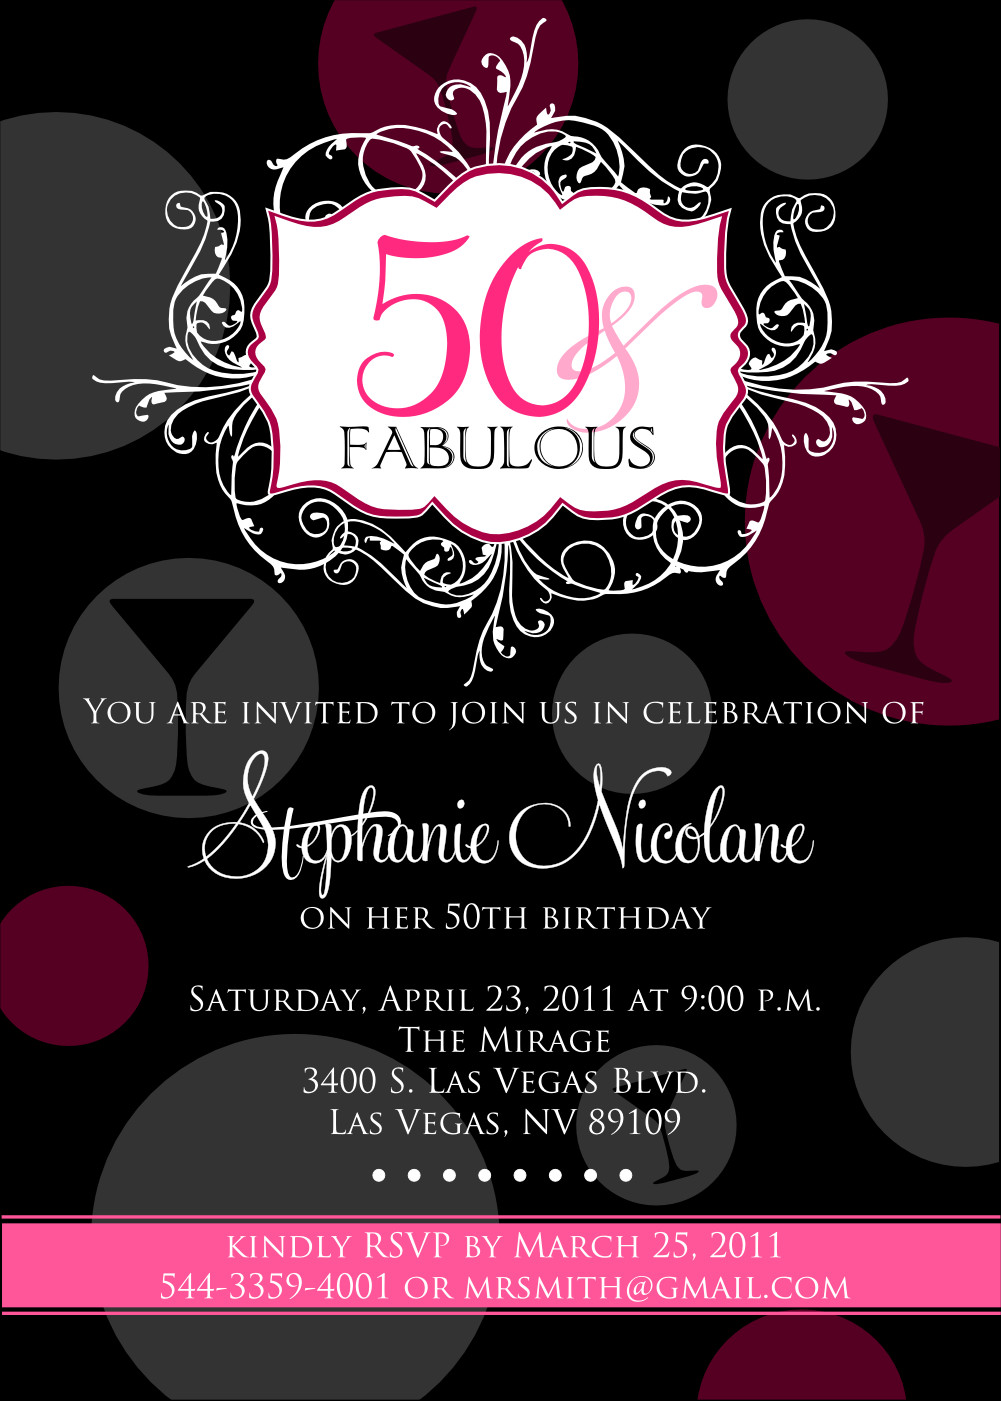 50th Birthday Invitations Templates 50th Birthday Beach Party Invitations